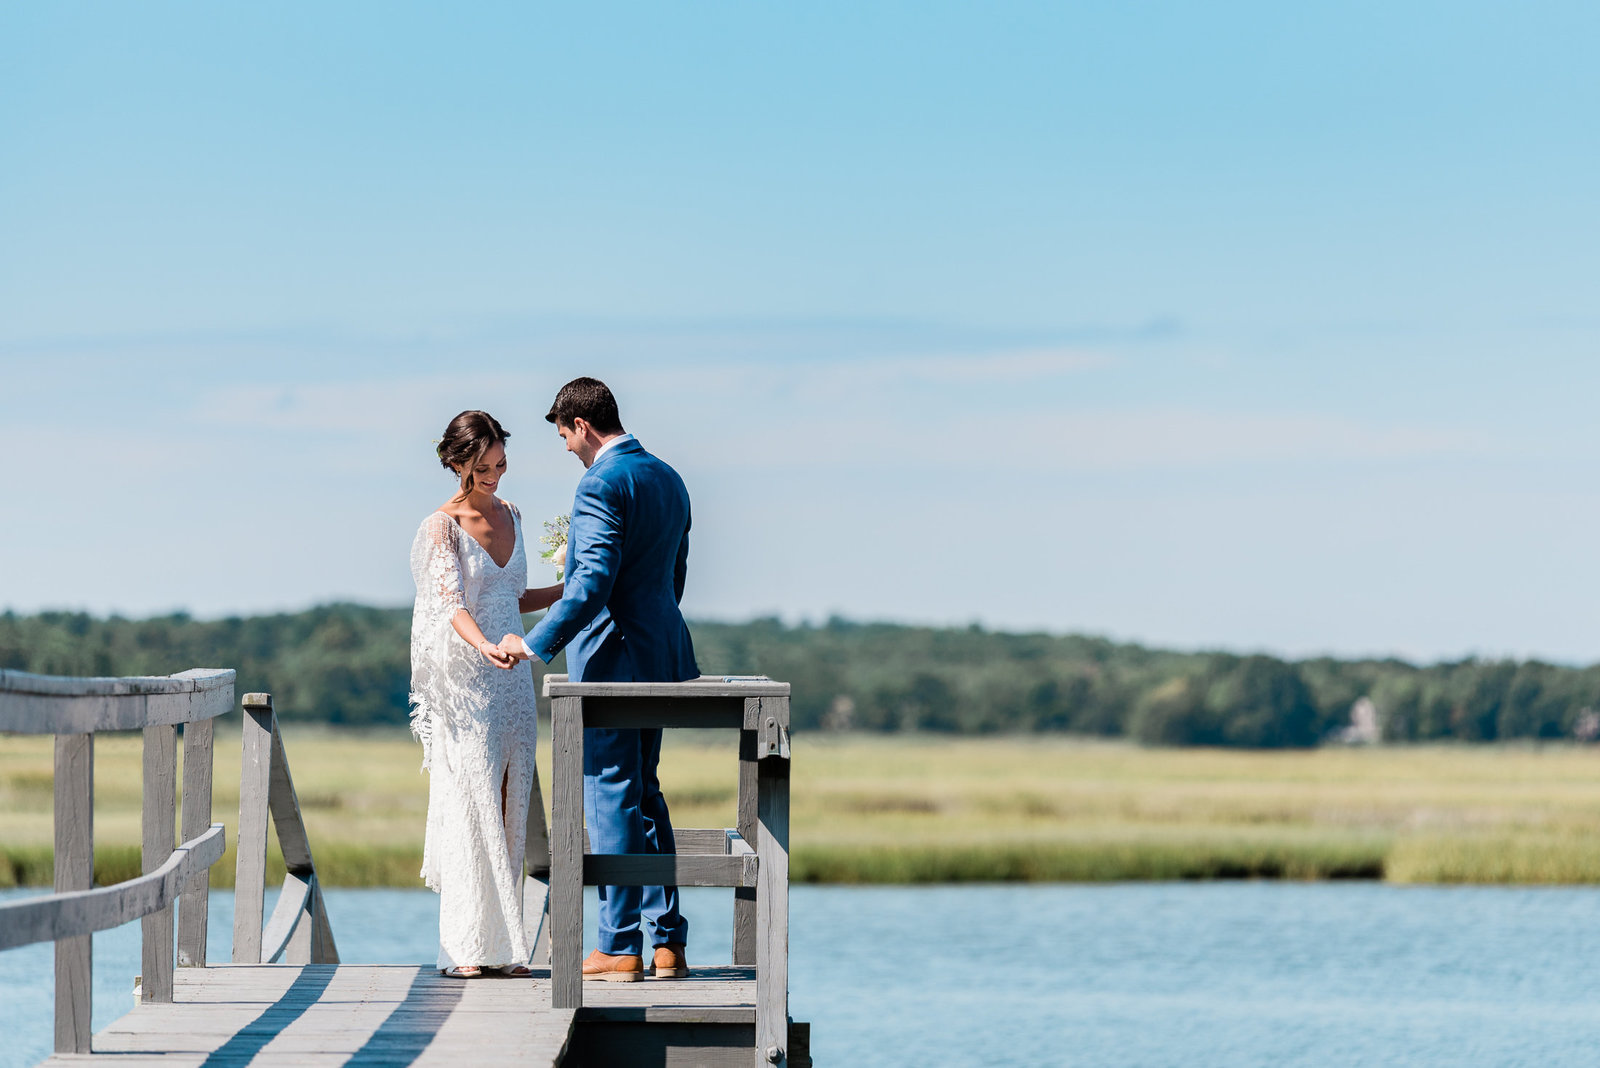 A bride and groom have their first look at the end of a dock overlooking back river before their duxbury, MA wedding at a private home on powder point